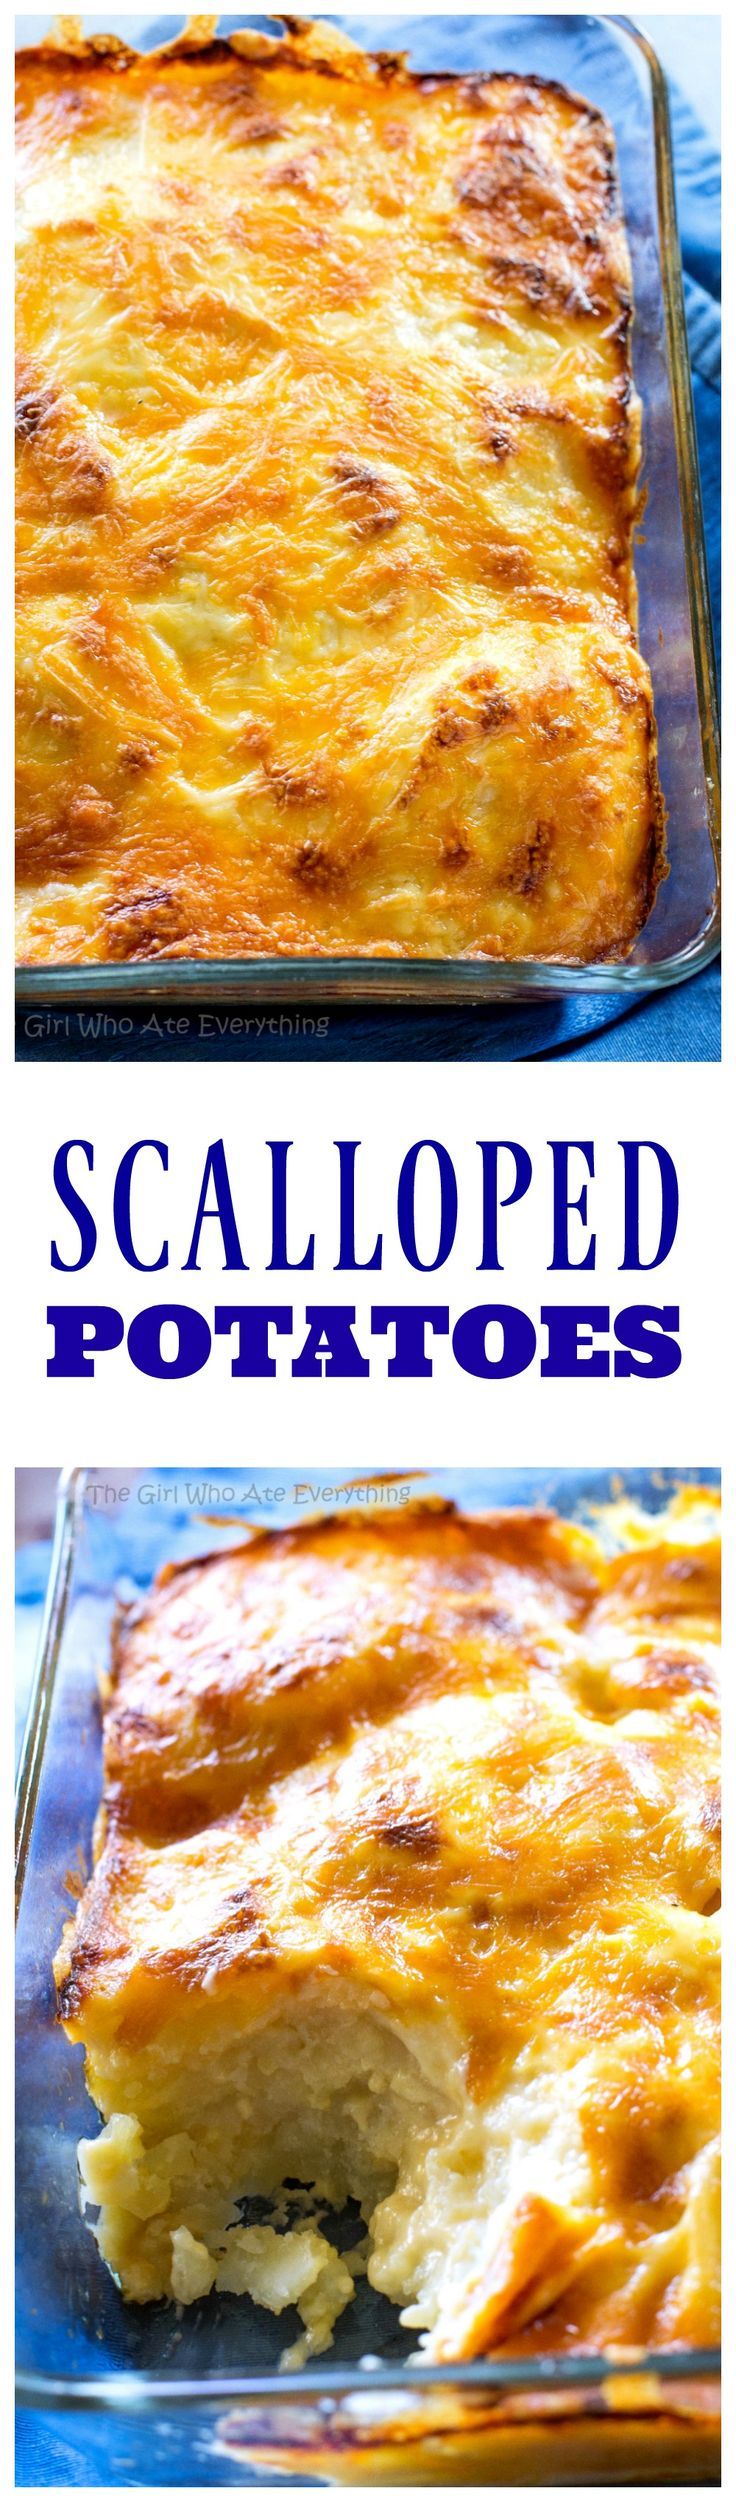 Scalloped Potatoes - a classic dish with potatoes, cheesy sauce, and baked until perfection! the-girl-who-ate-everything.com